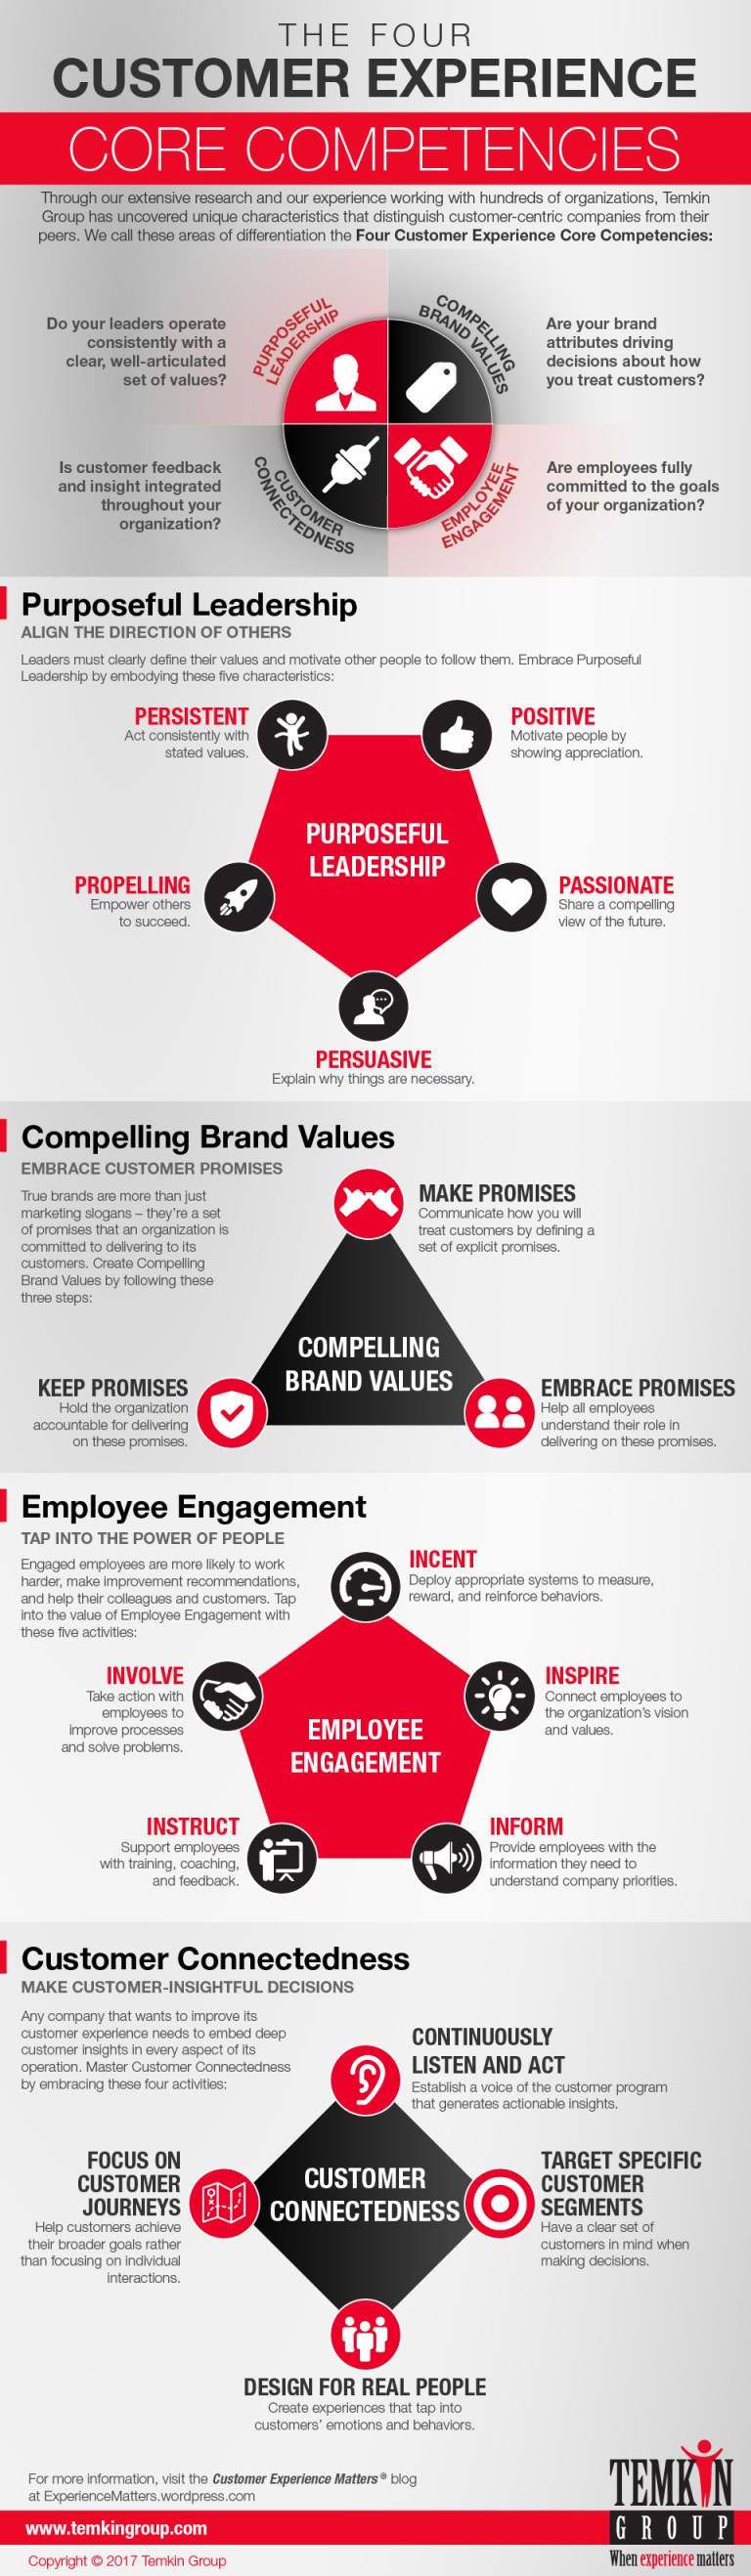 4CXCompetencies_Infographic